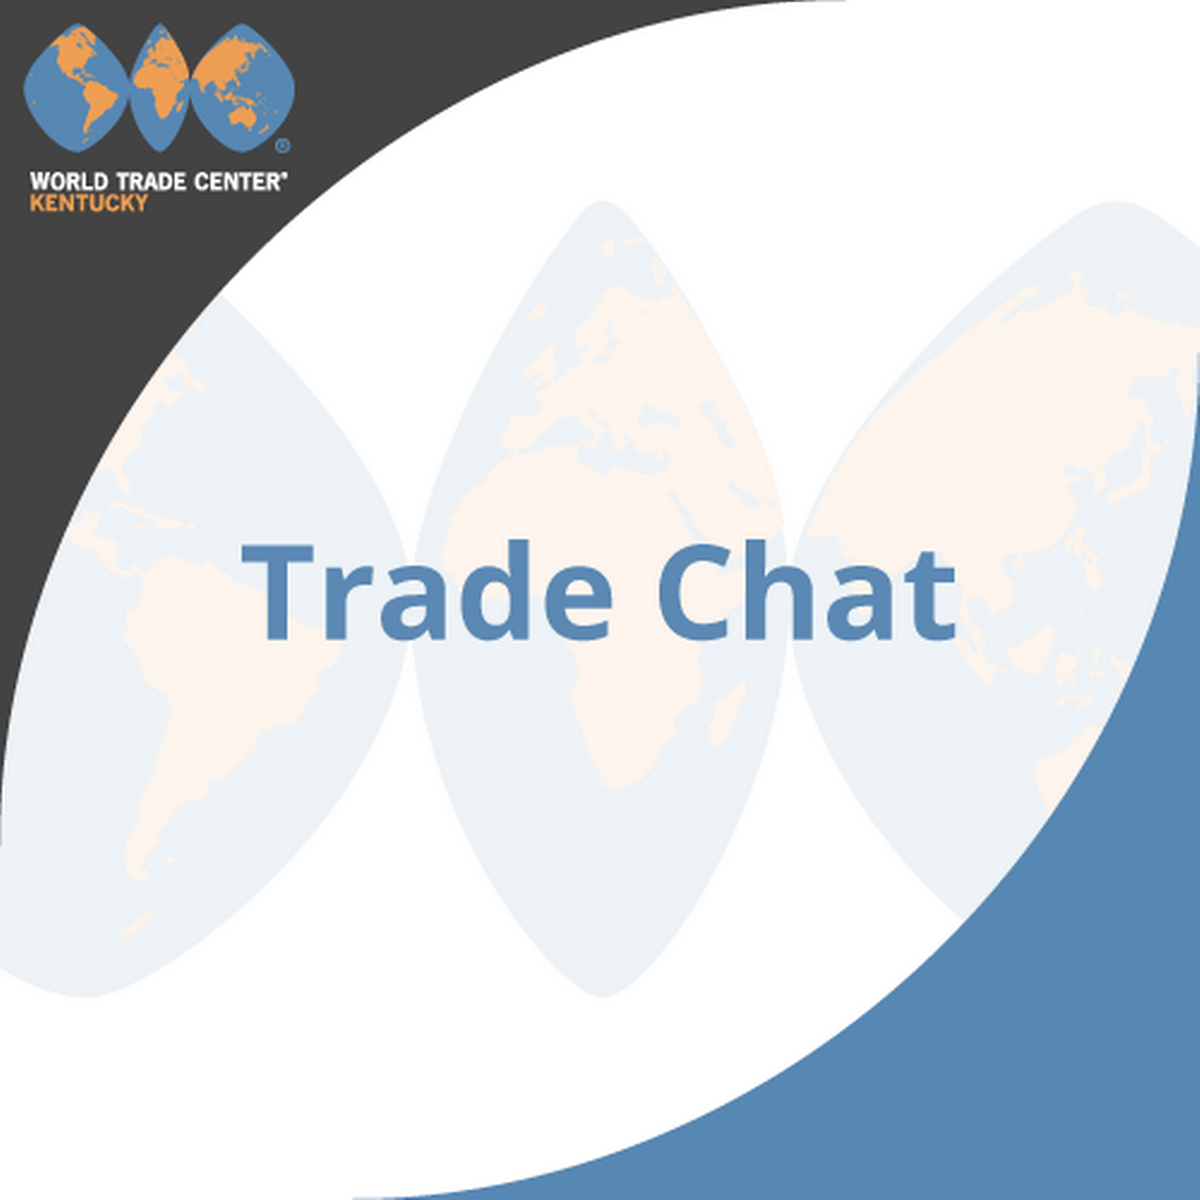 Trade Chat: Ask the experts - Product Classifications